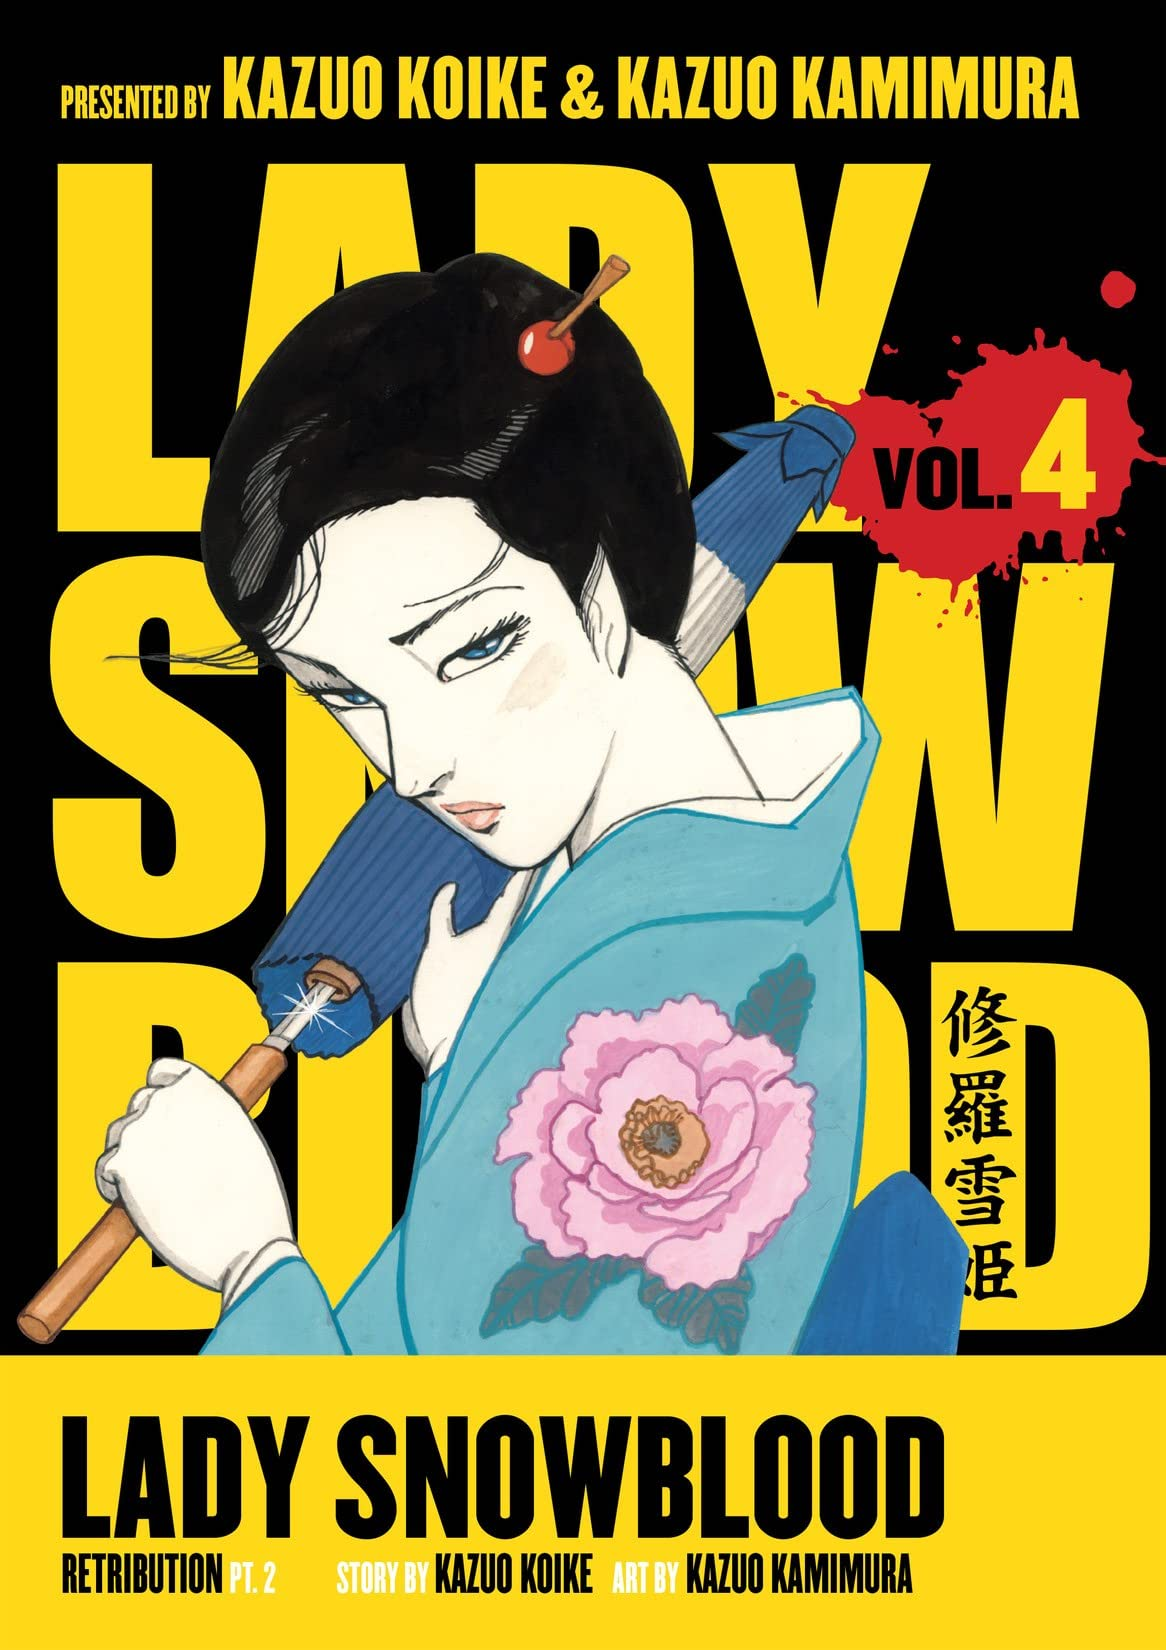 Lady Snowblood Vol. 4